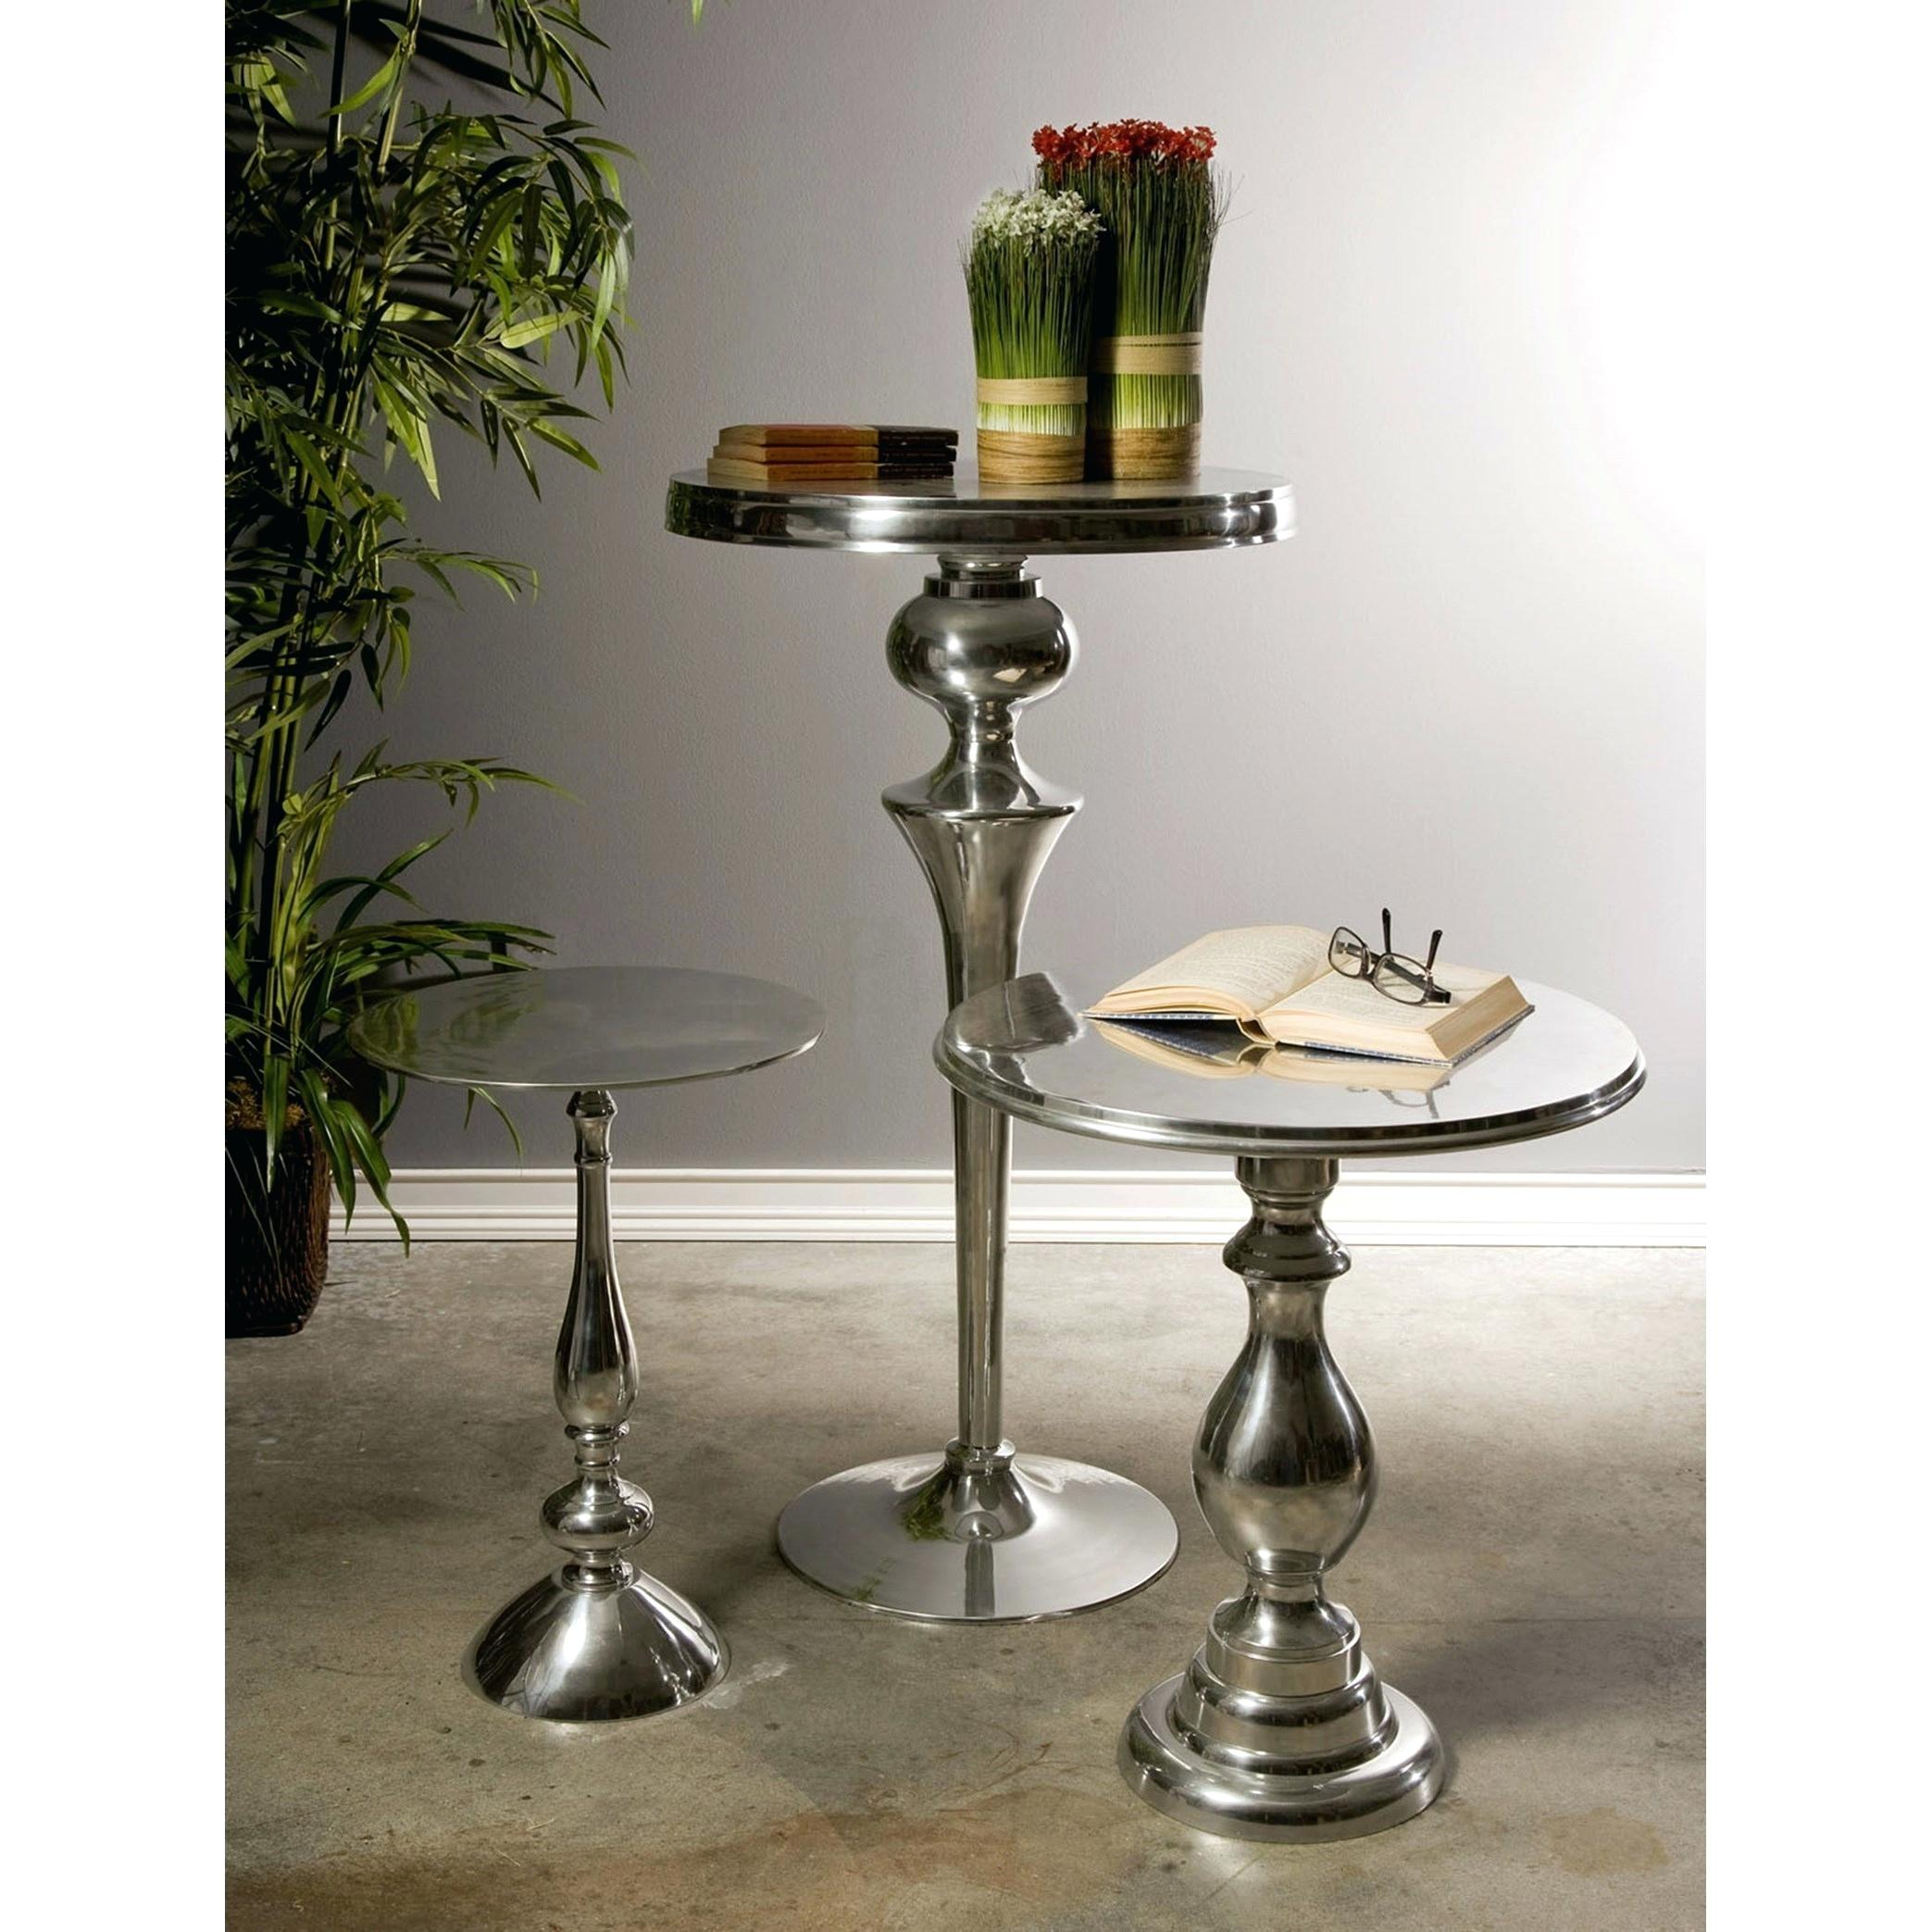 aluminum side table west elm hexagon worldwide home accent tables and cabinets cast patio antique oval chairs ikea tall end cabinet fine furniture edmonton pier one curtains